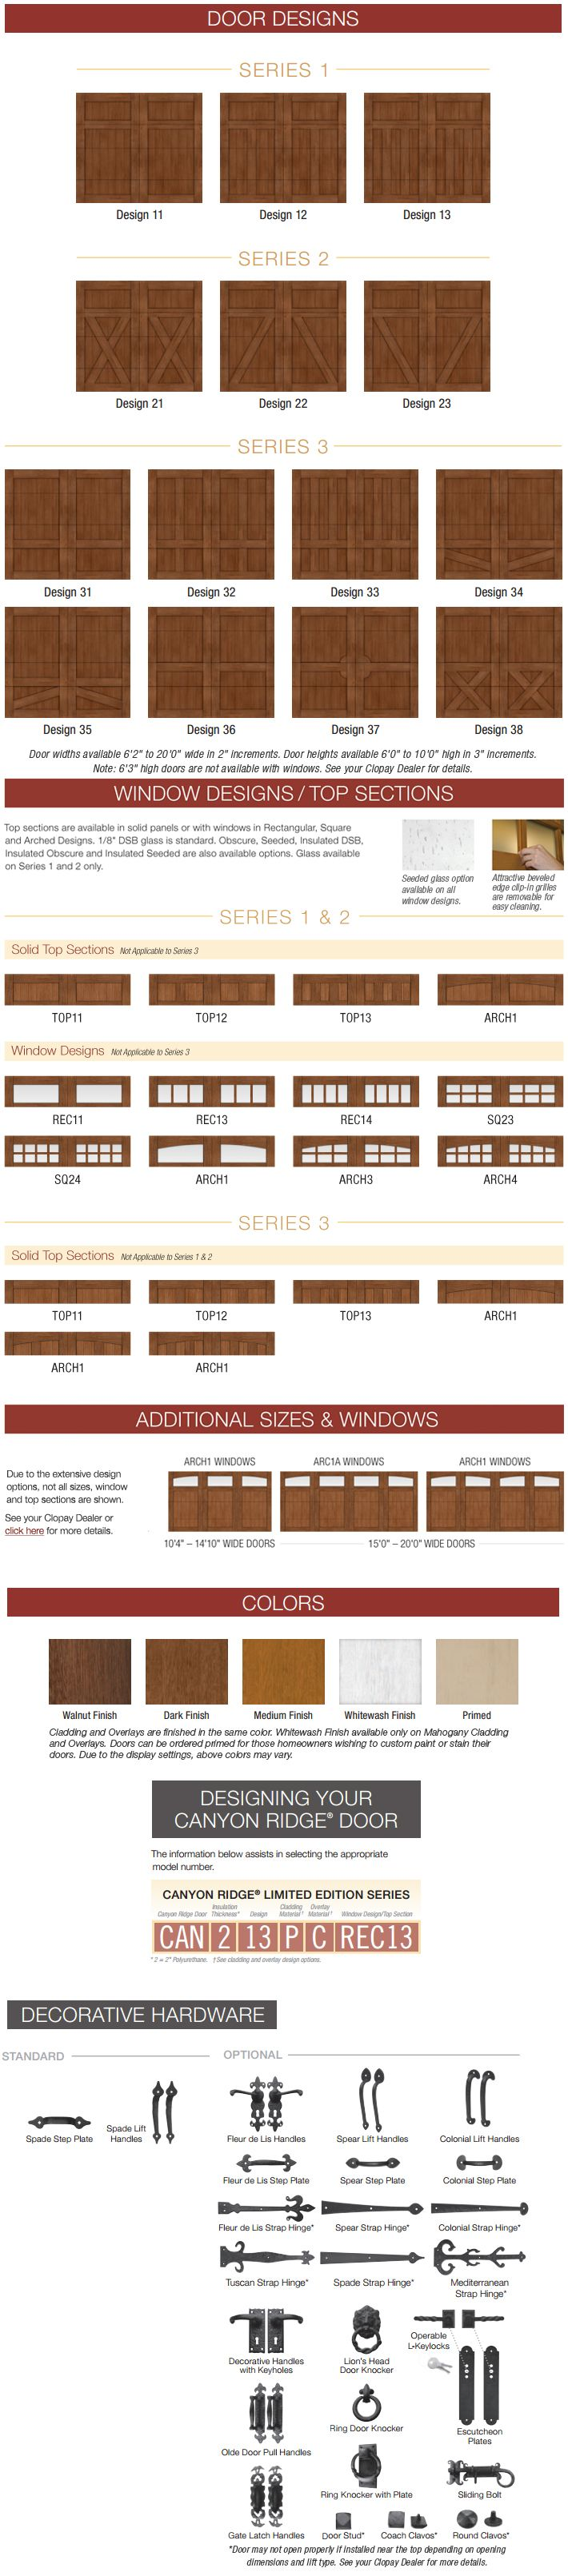 Garage doors sizes available - Canyon Ridge Steel Garage Door Wood Garage Door Clopay